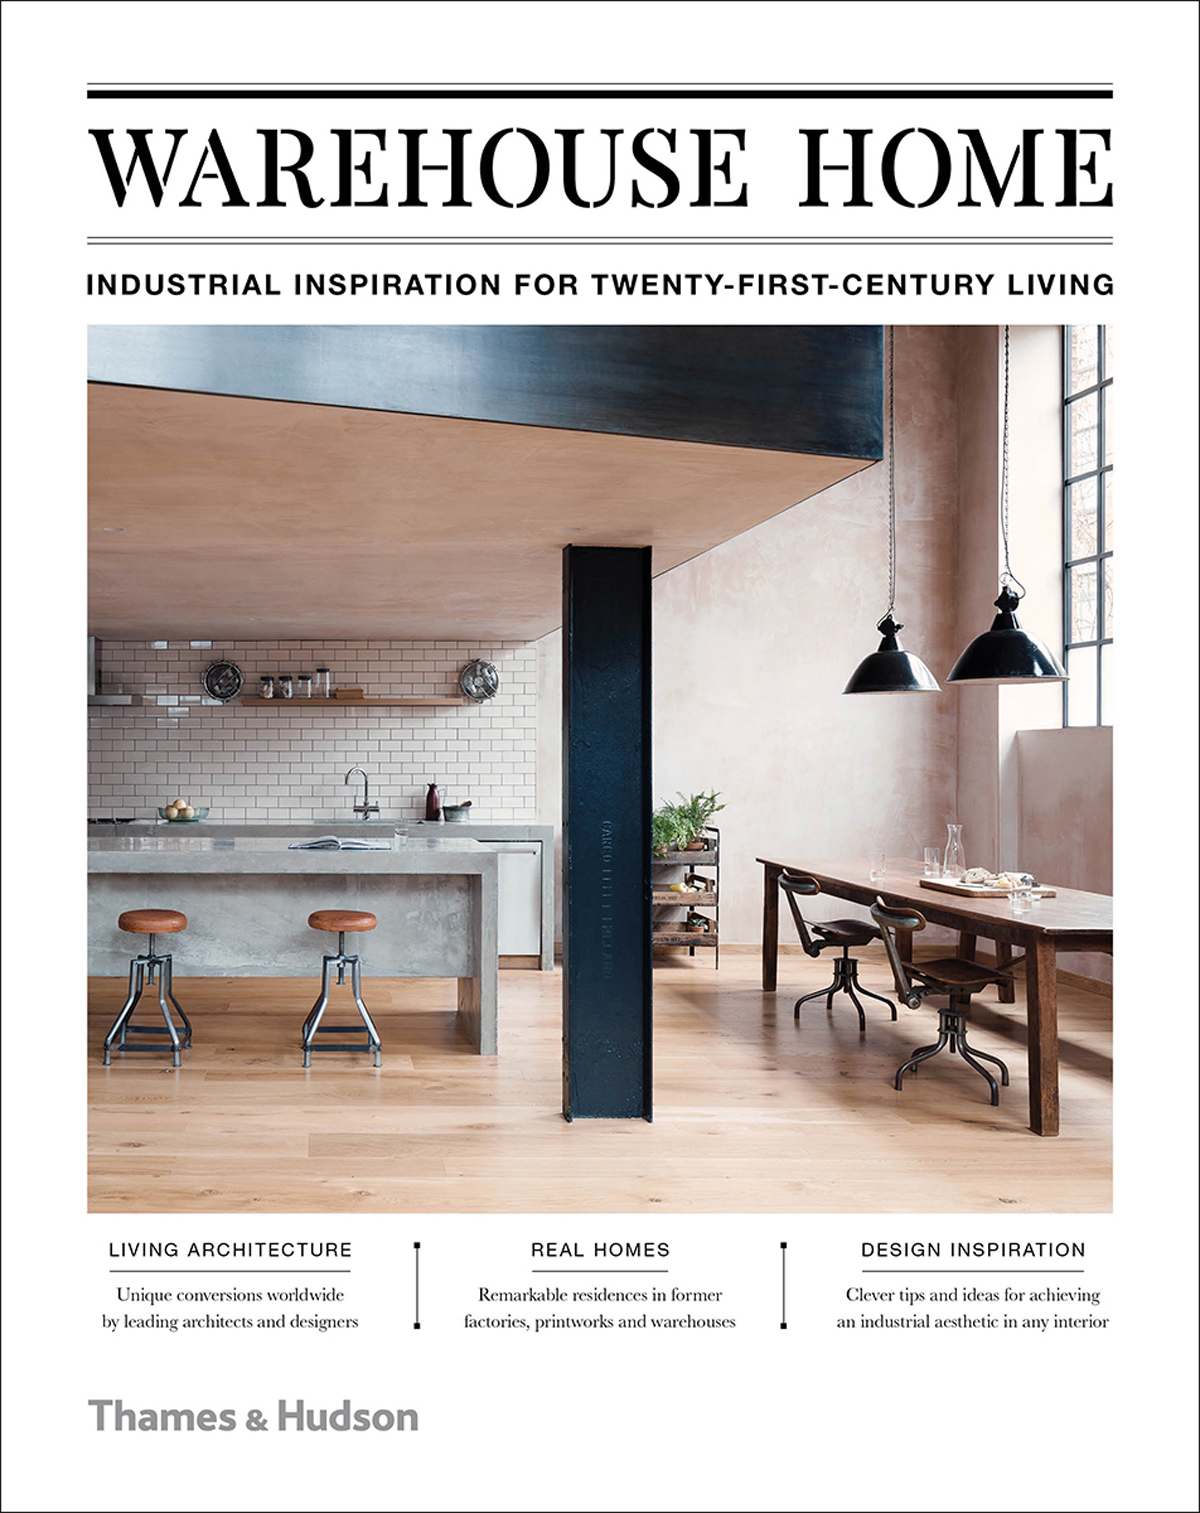 Warehouse home front cover